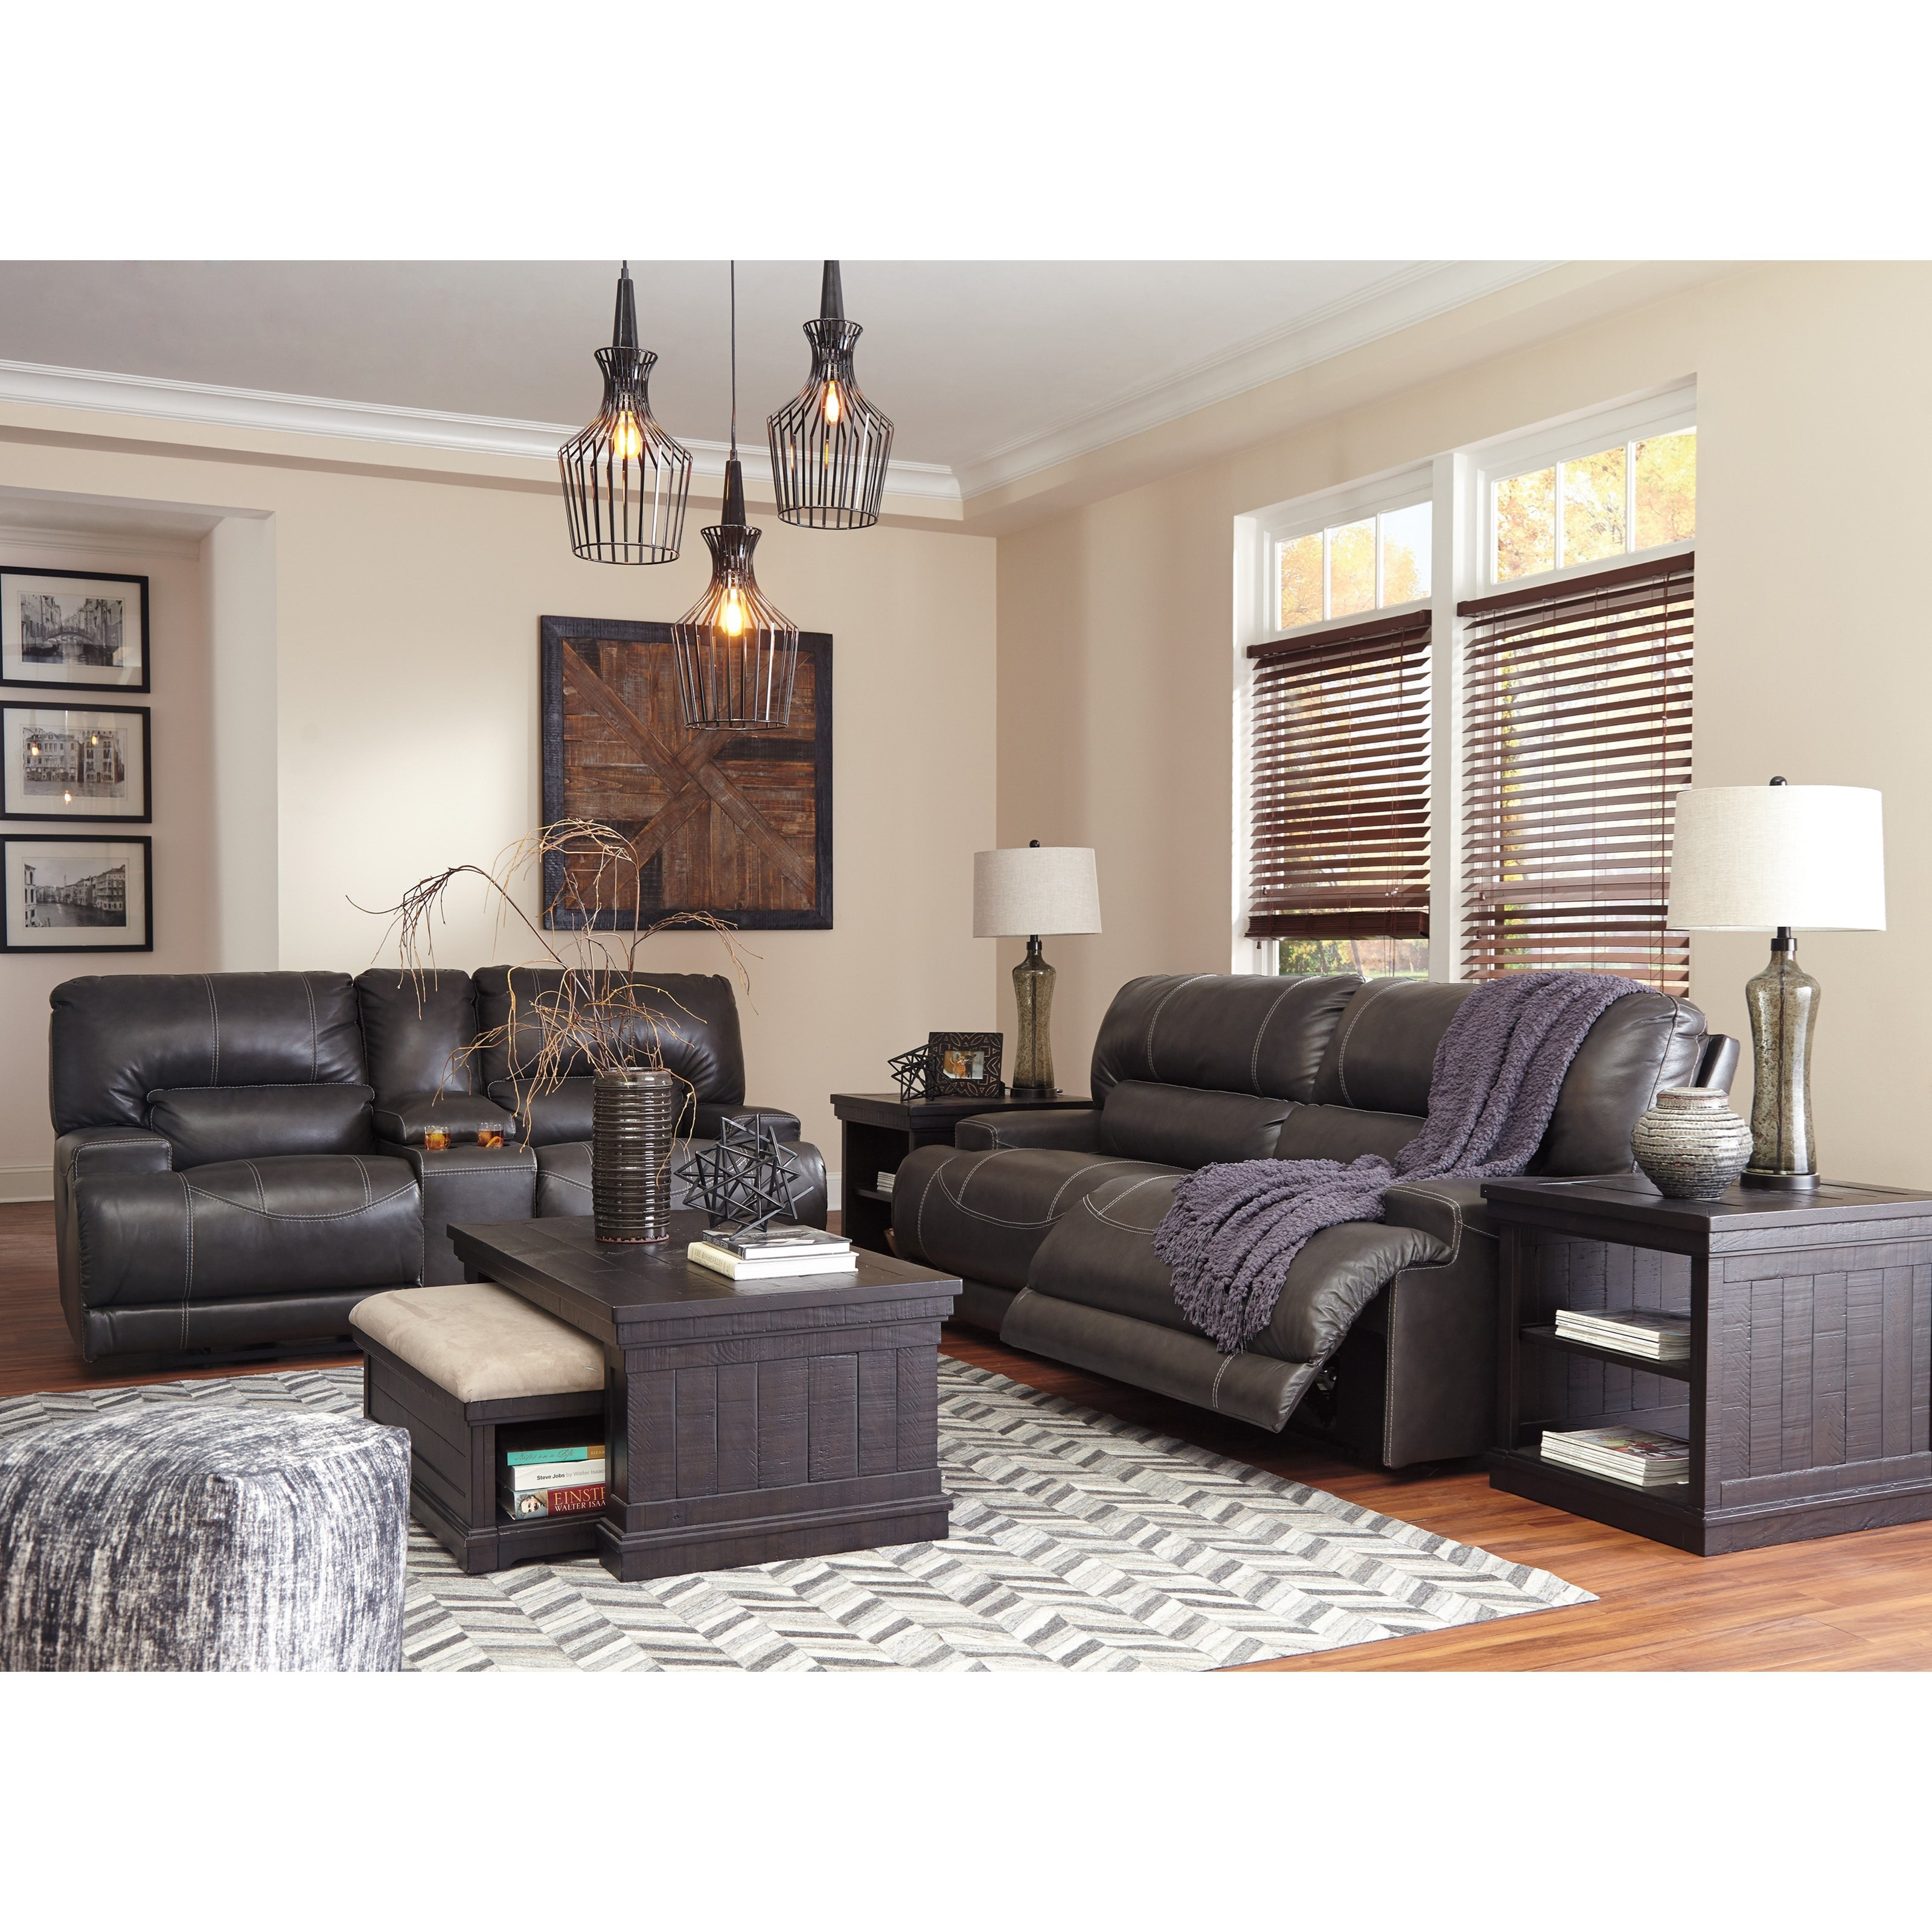 Does Sofa And Loveseat Have To Match: Ashley Signature Design McCaskill U6090047 Contemporary